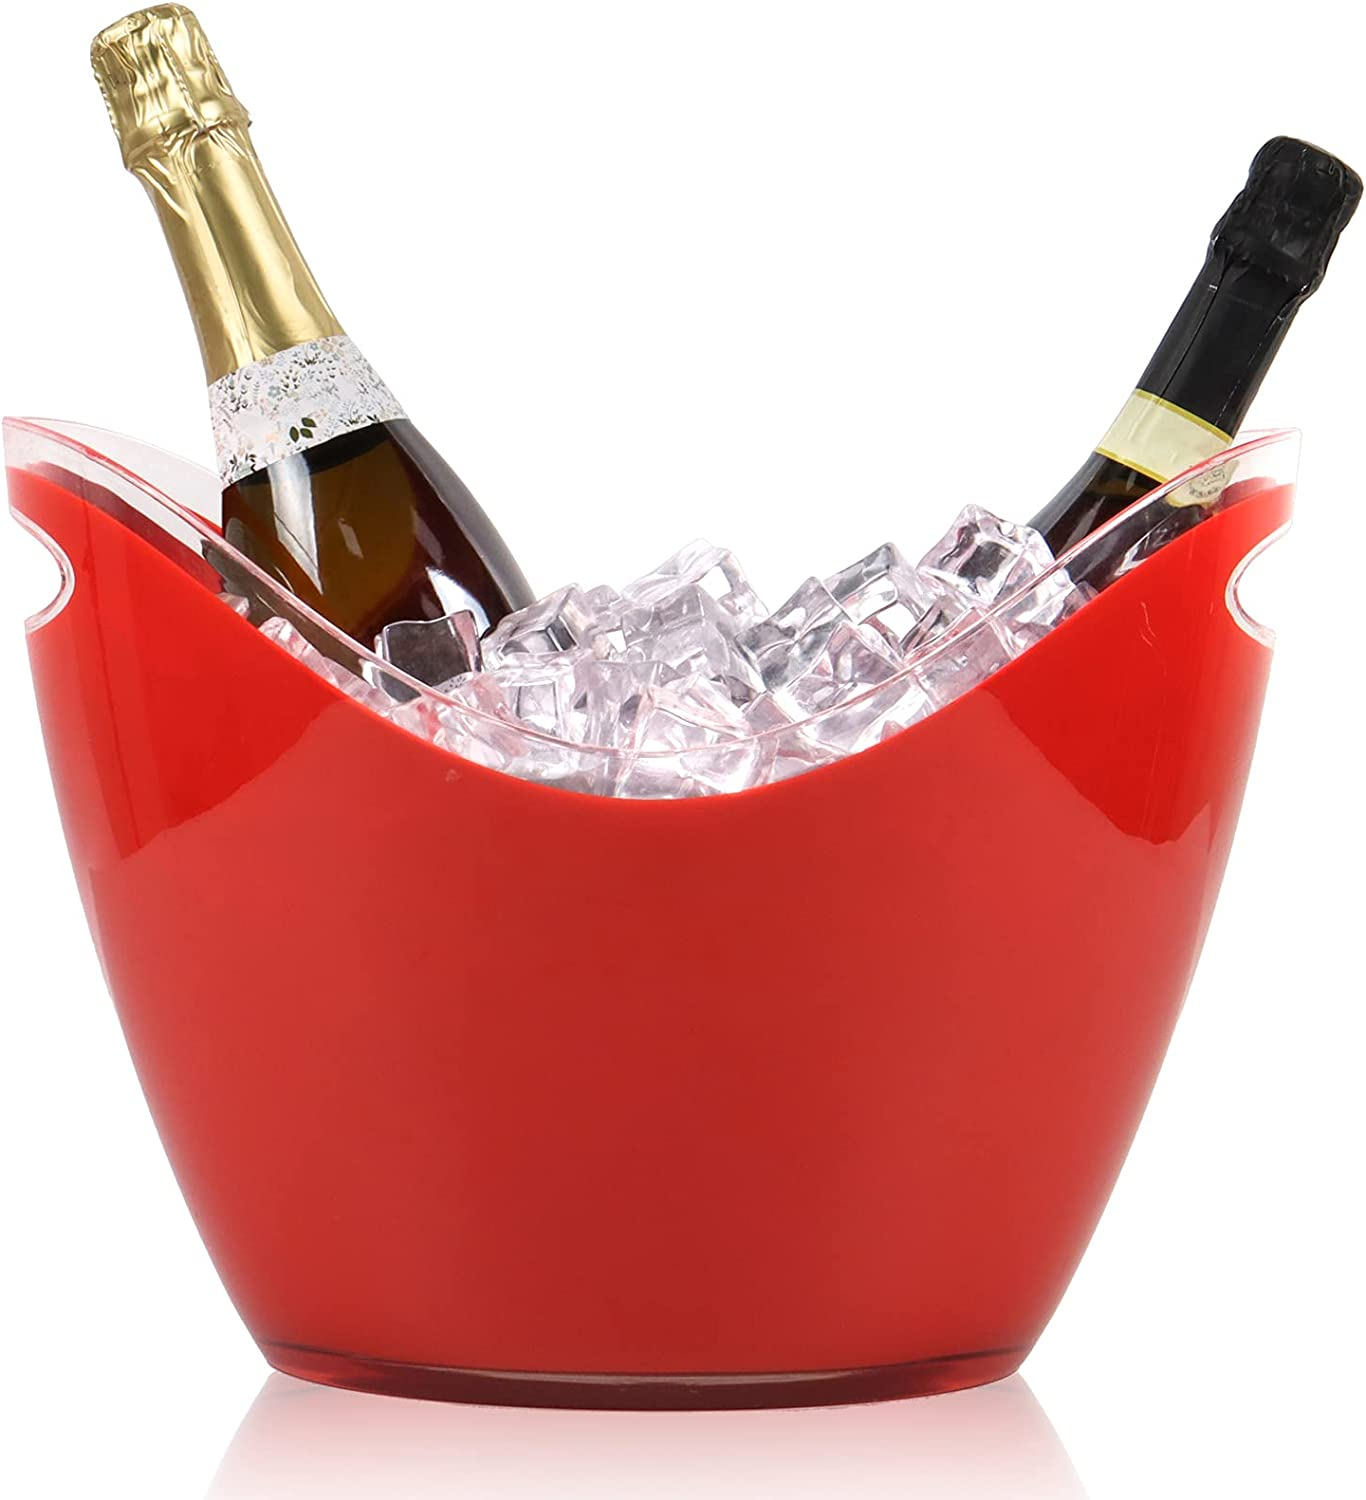 8L Acrylic Beverage Tub Large Ice Bucket Wine Champagne Beer Bucket for Parties Barbecue Picnic Red